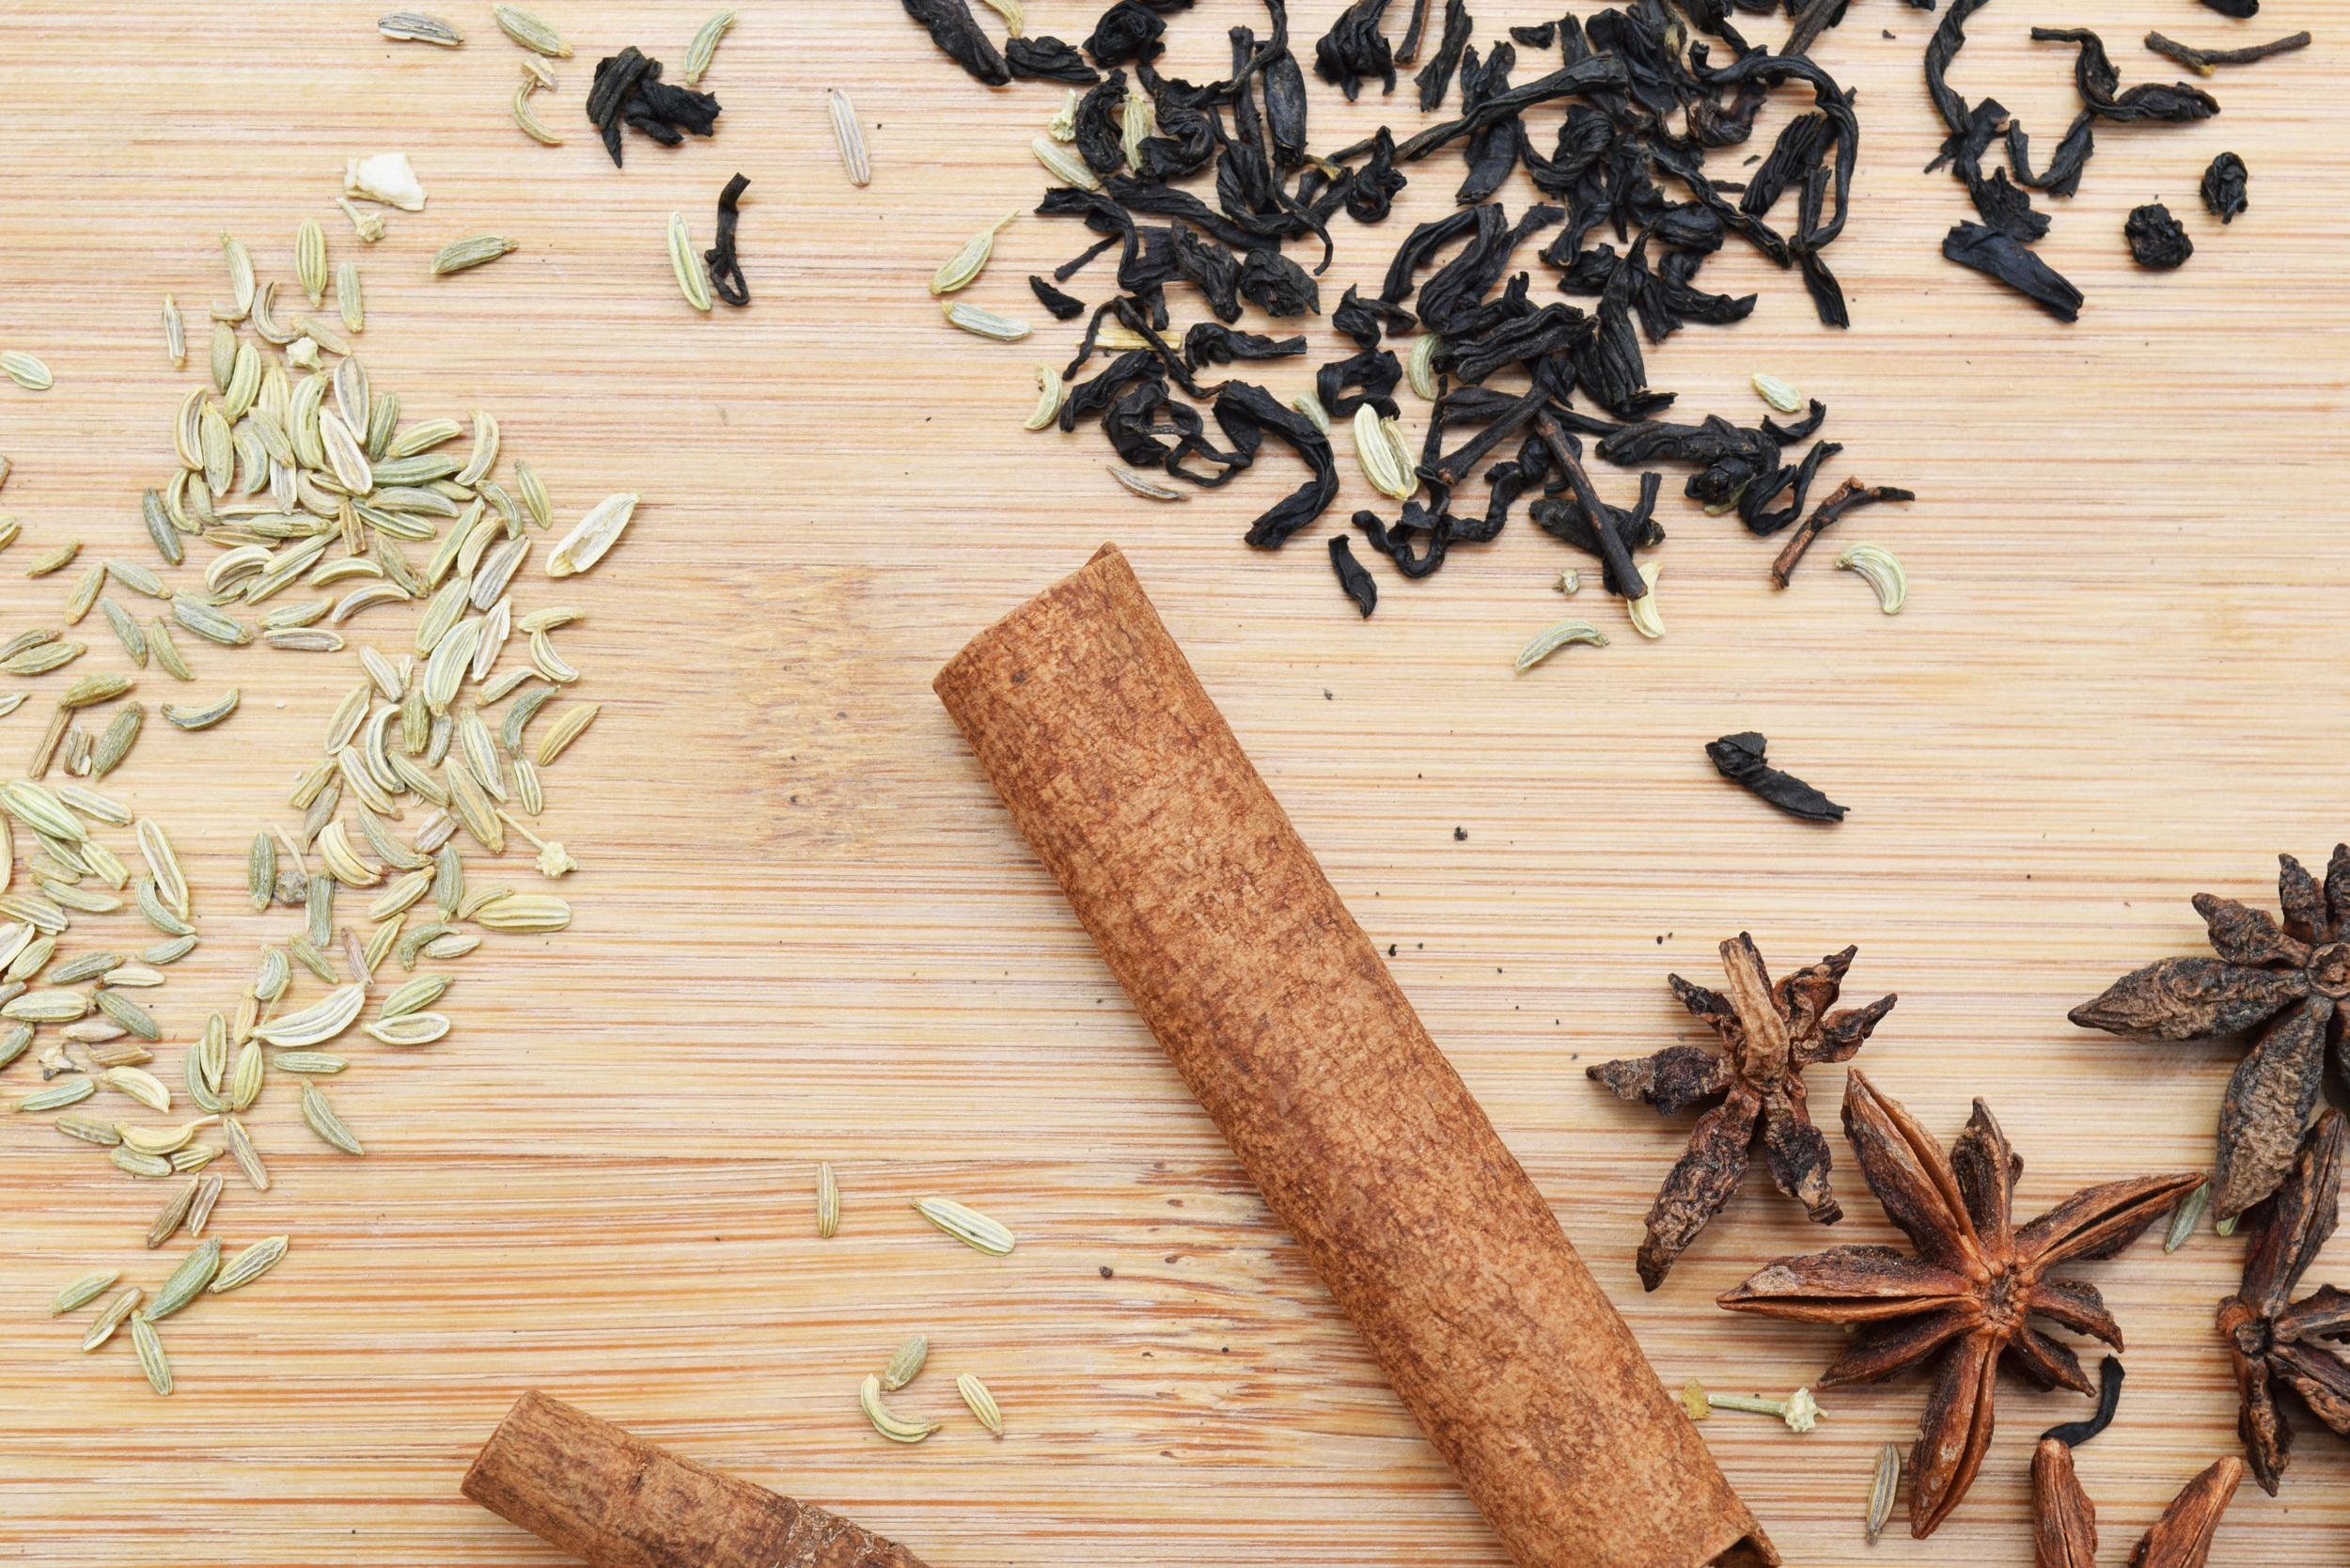 Fennel seeds,Cinnamon sticks, Lasang Souchong Tea and Anise Stars